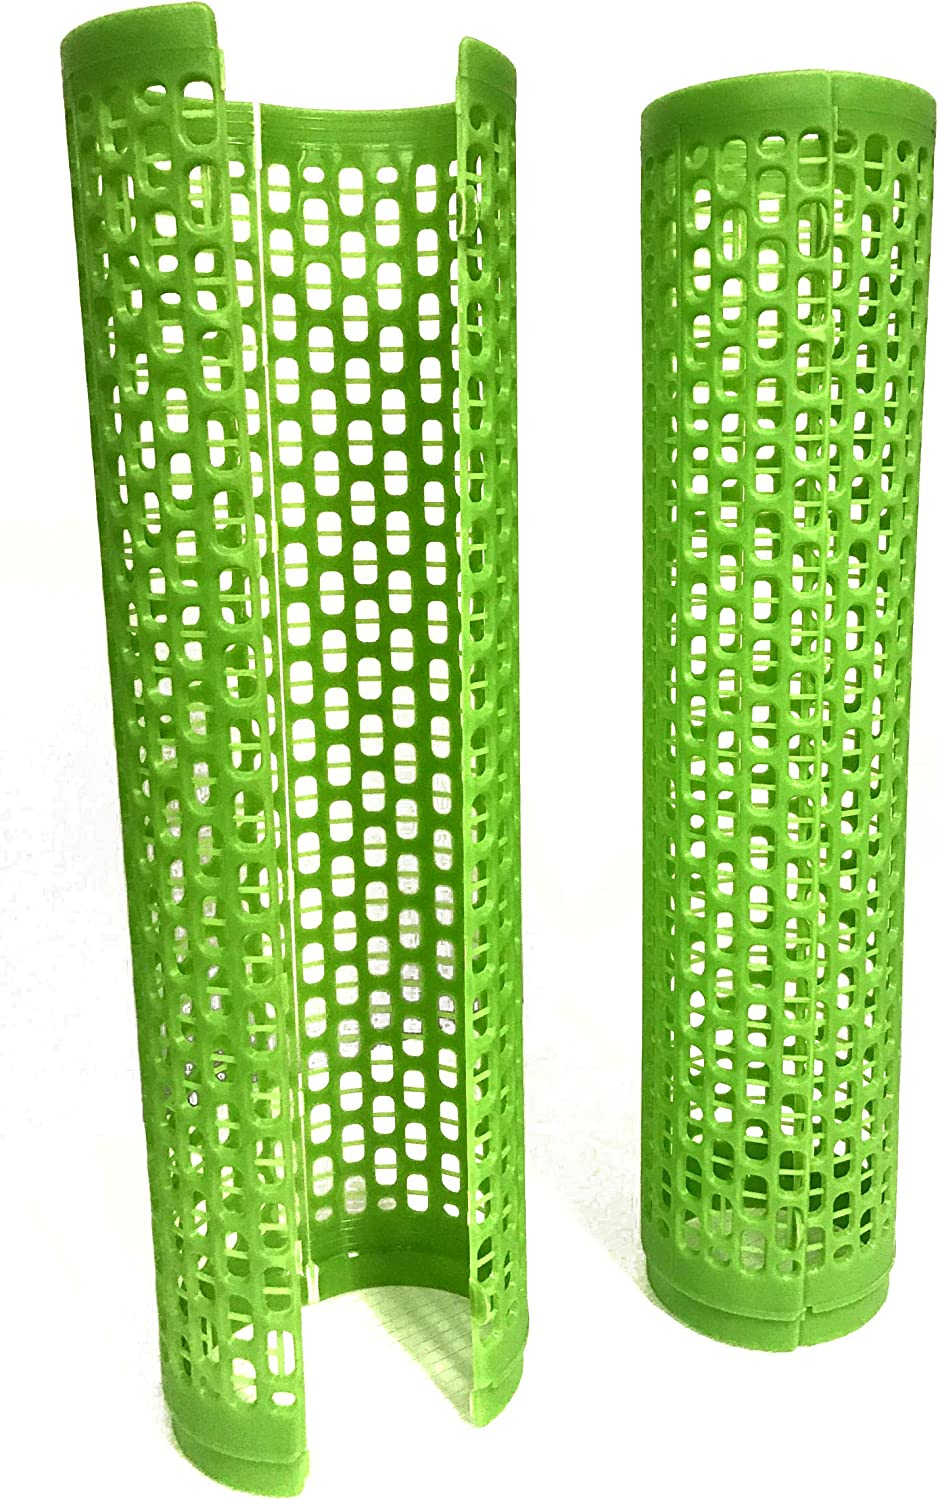 Orchard Innovations Tree Shield Grow Tube - Open Cell (Green), 15 inches Tall, 6 Count; UV-stabilized for Long-Life, Protect Trees from Small Animals, Trimmers, Made in USA